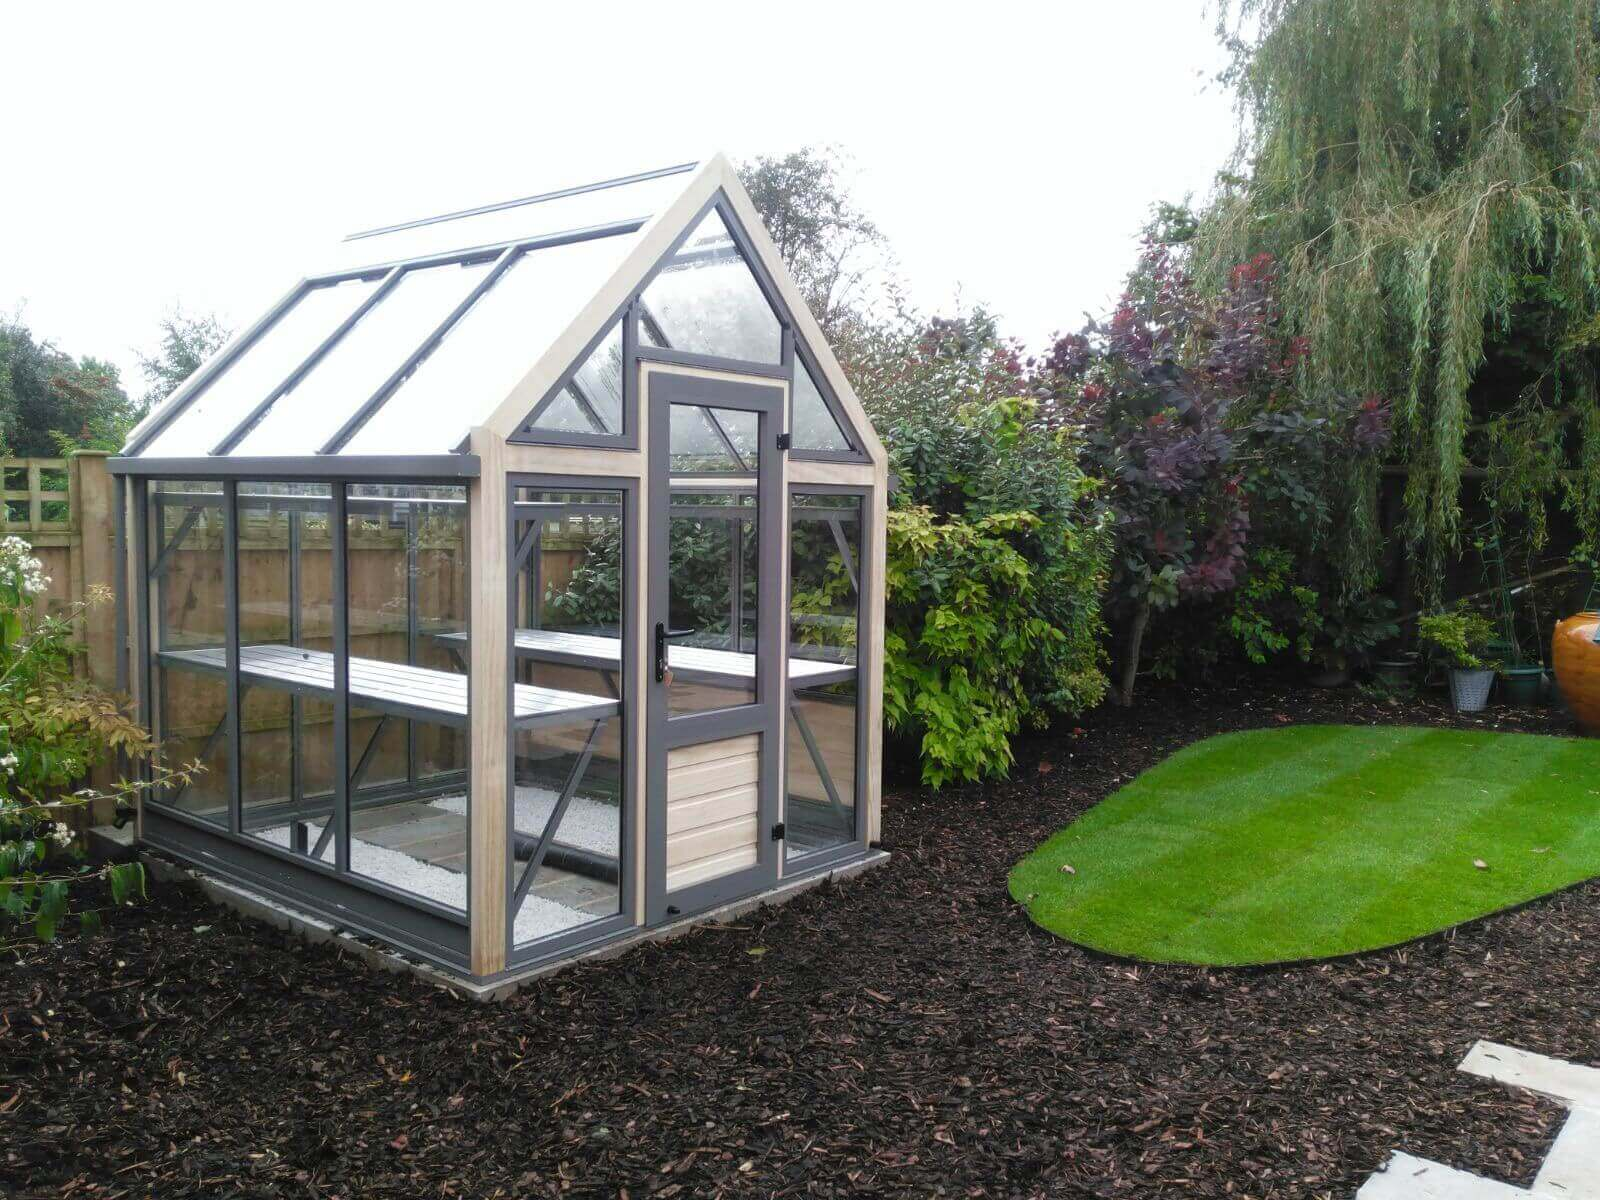 Small Greenhouse in a modern garden setting